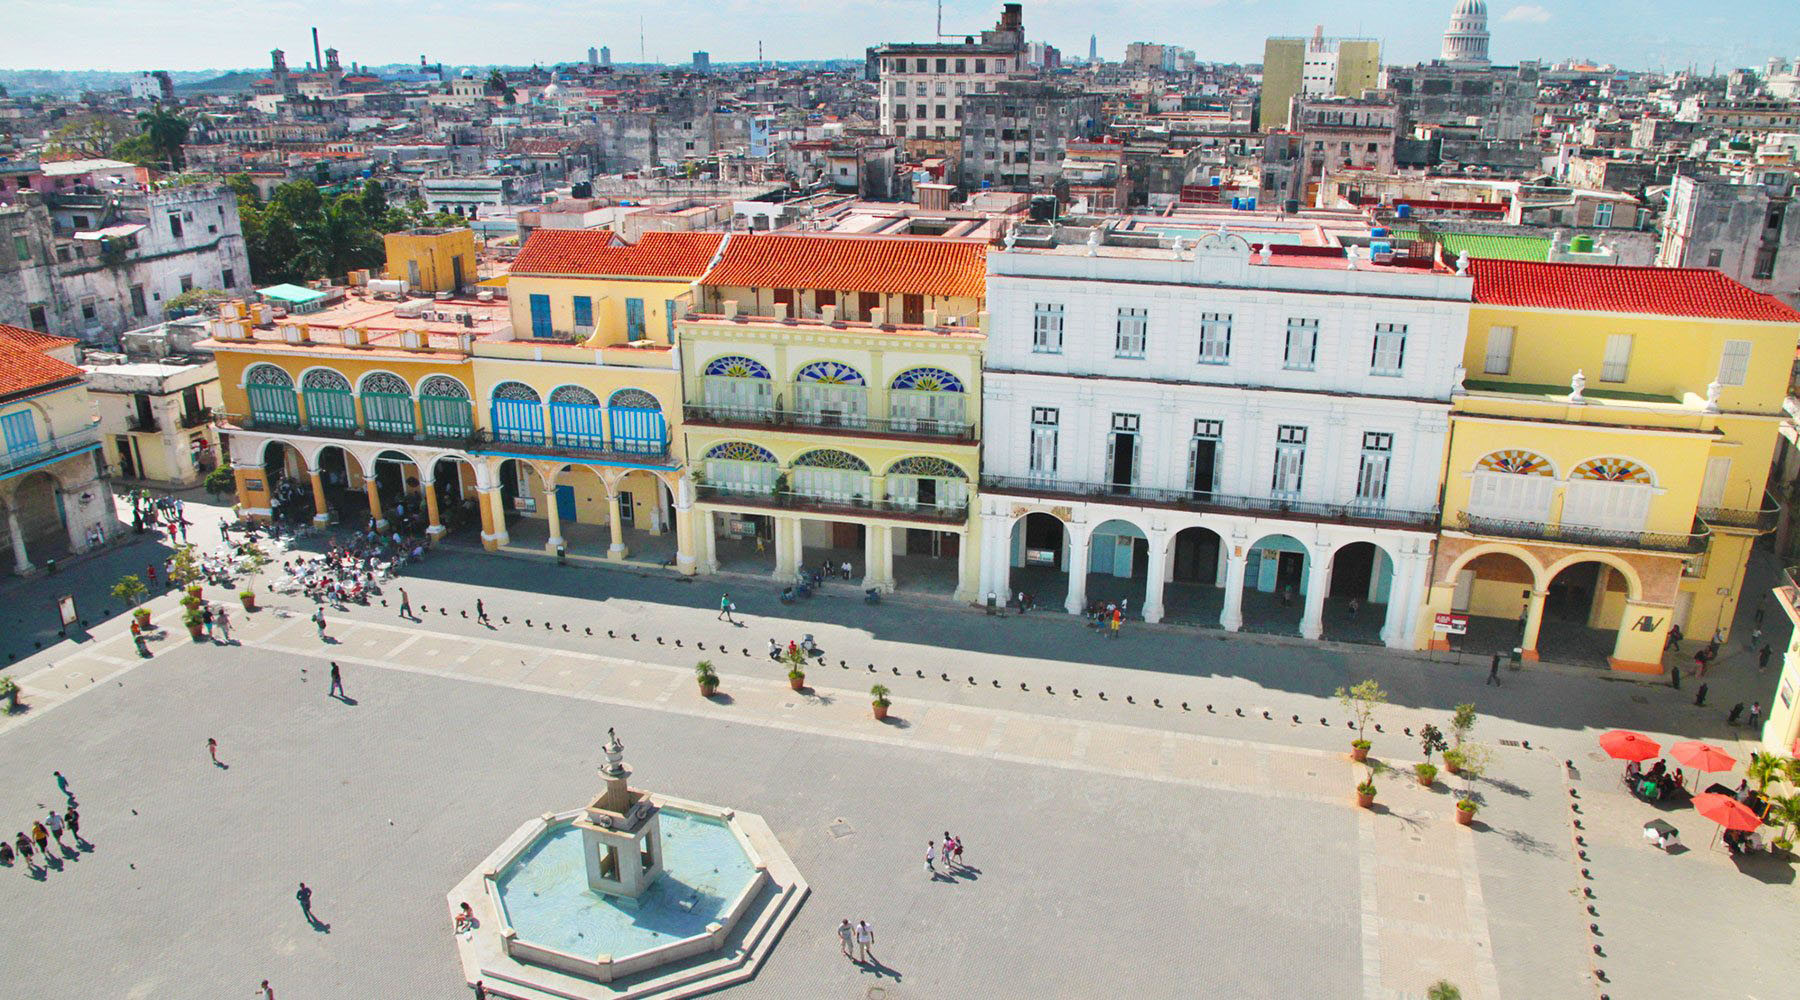 10-NIGHT CUBA INTENSIVE VOYAGE